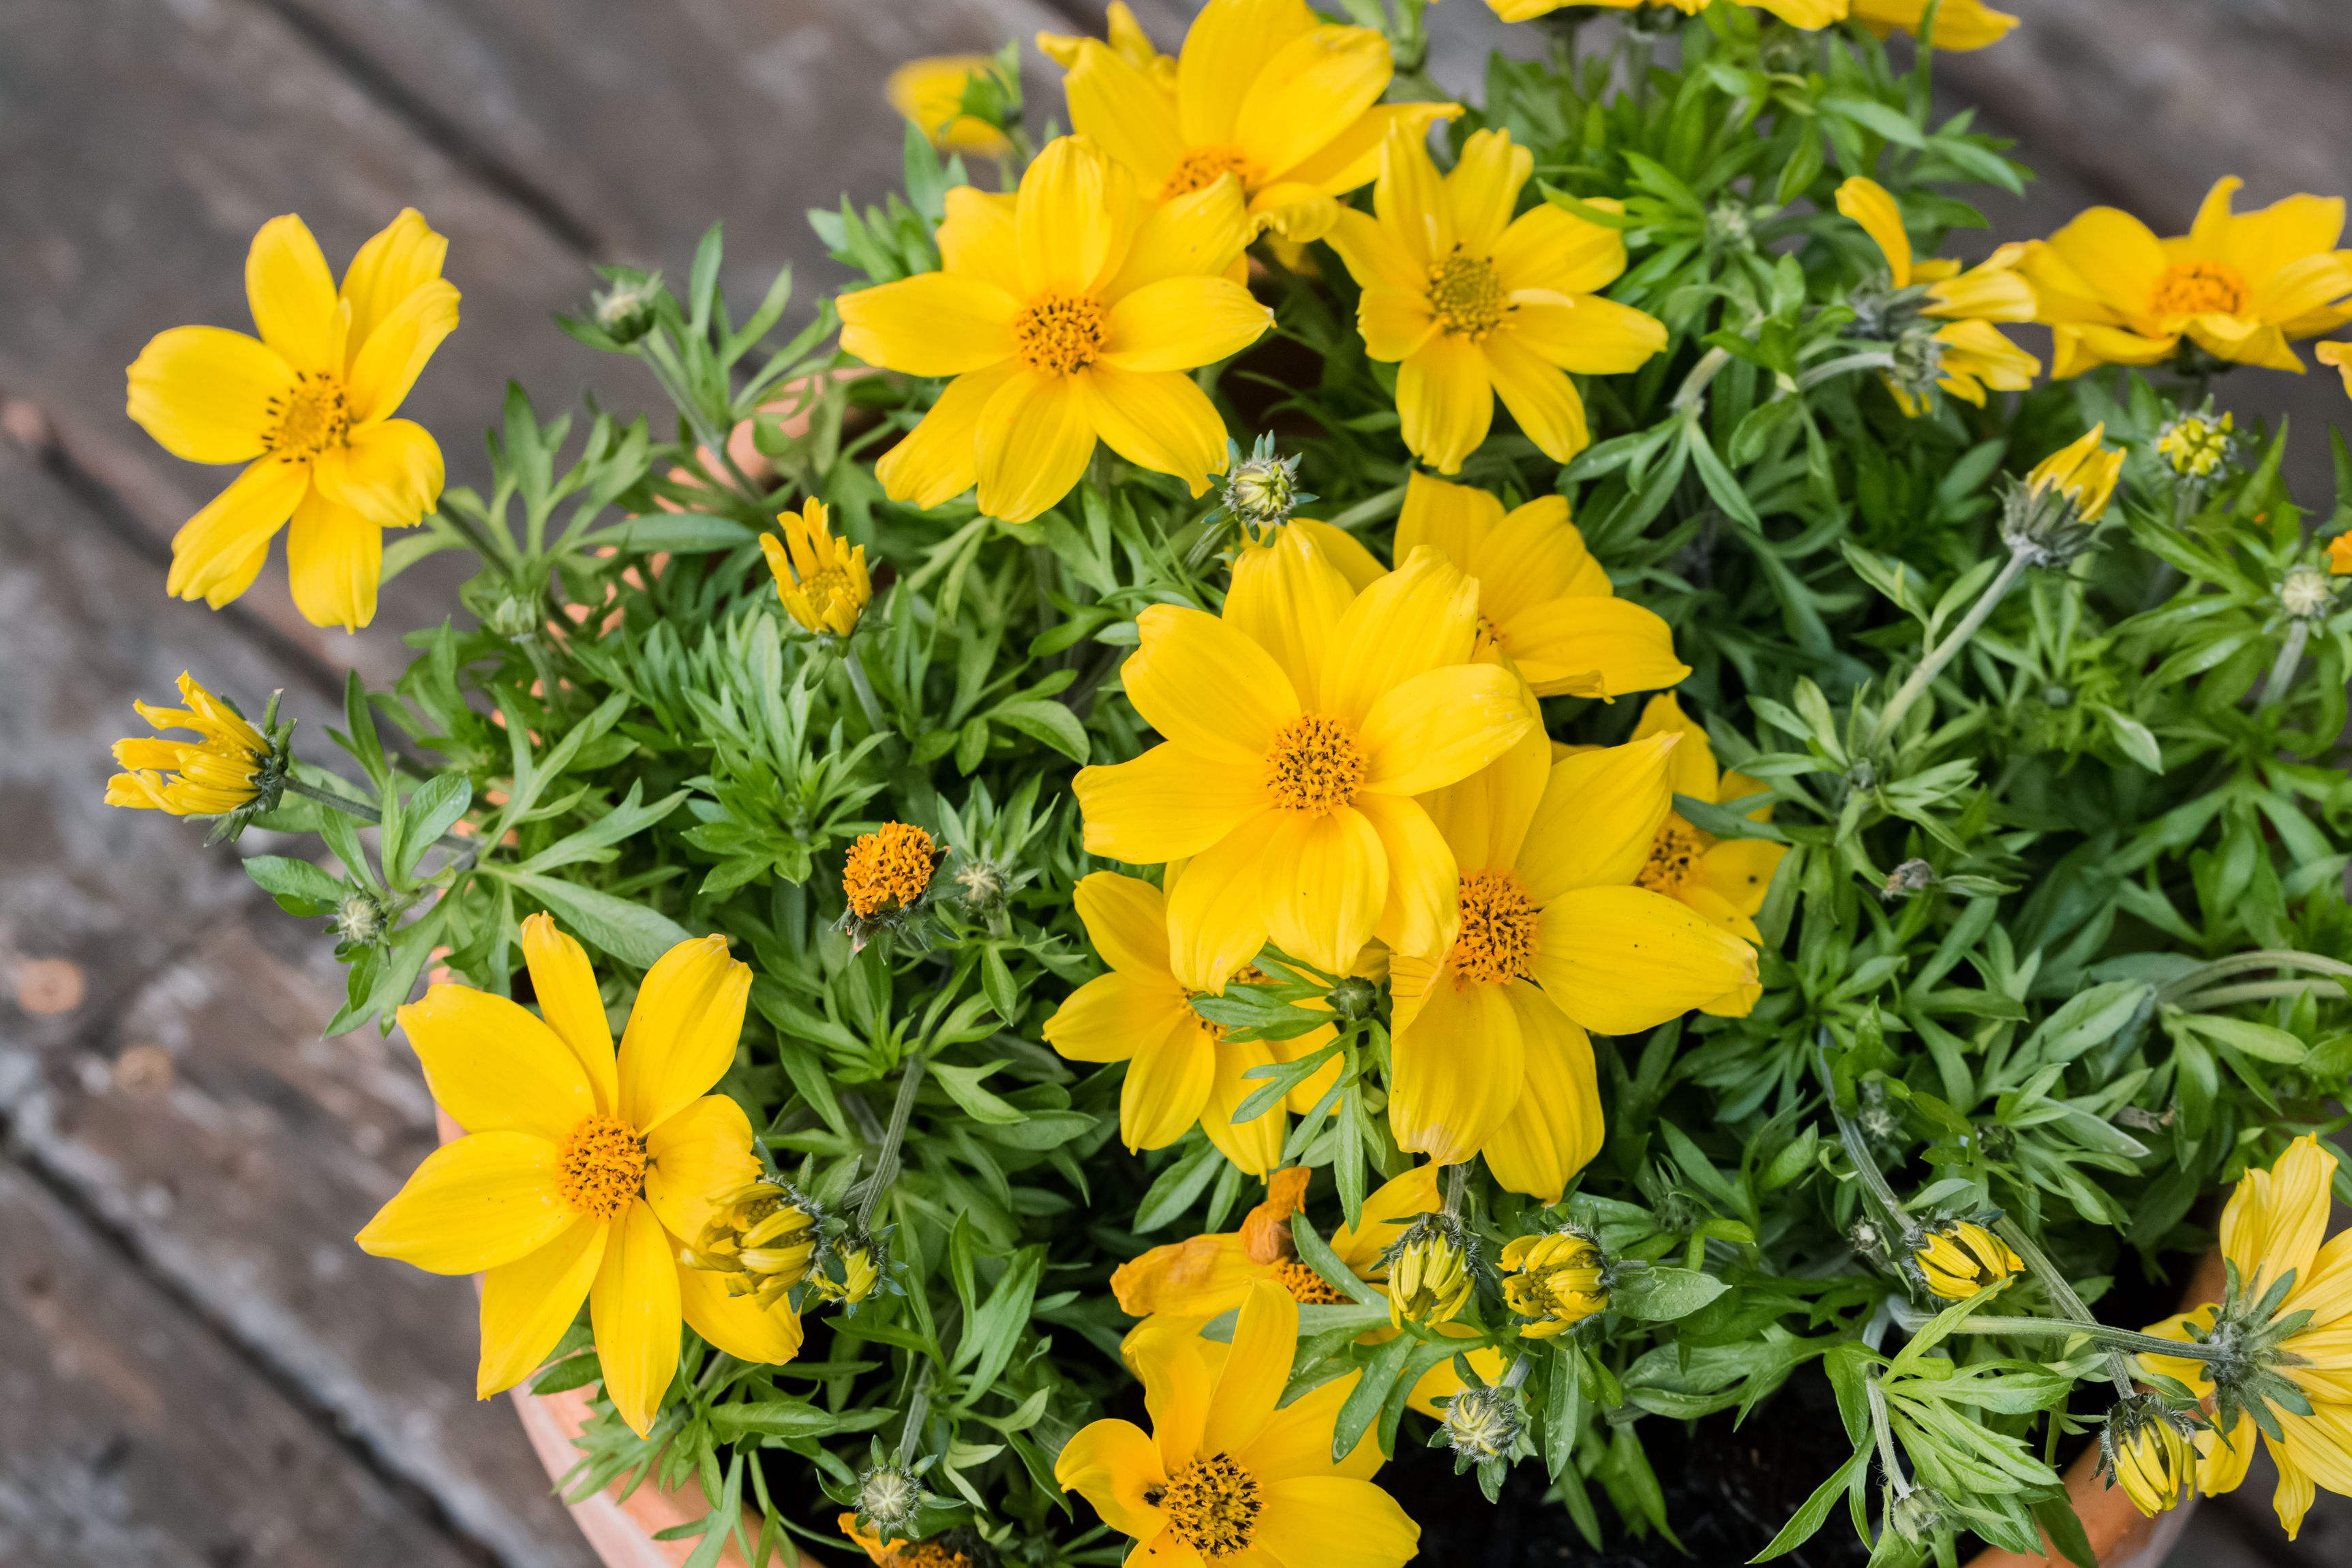 Bidens Plant: Care and Growing Guide